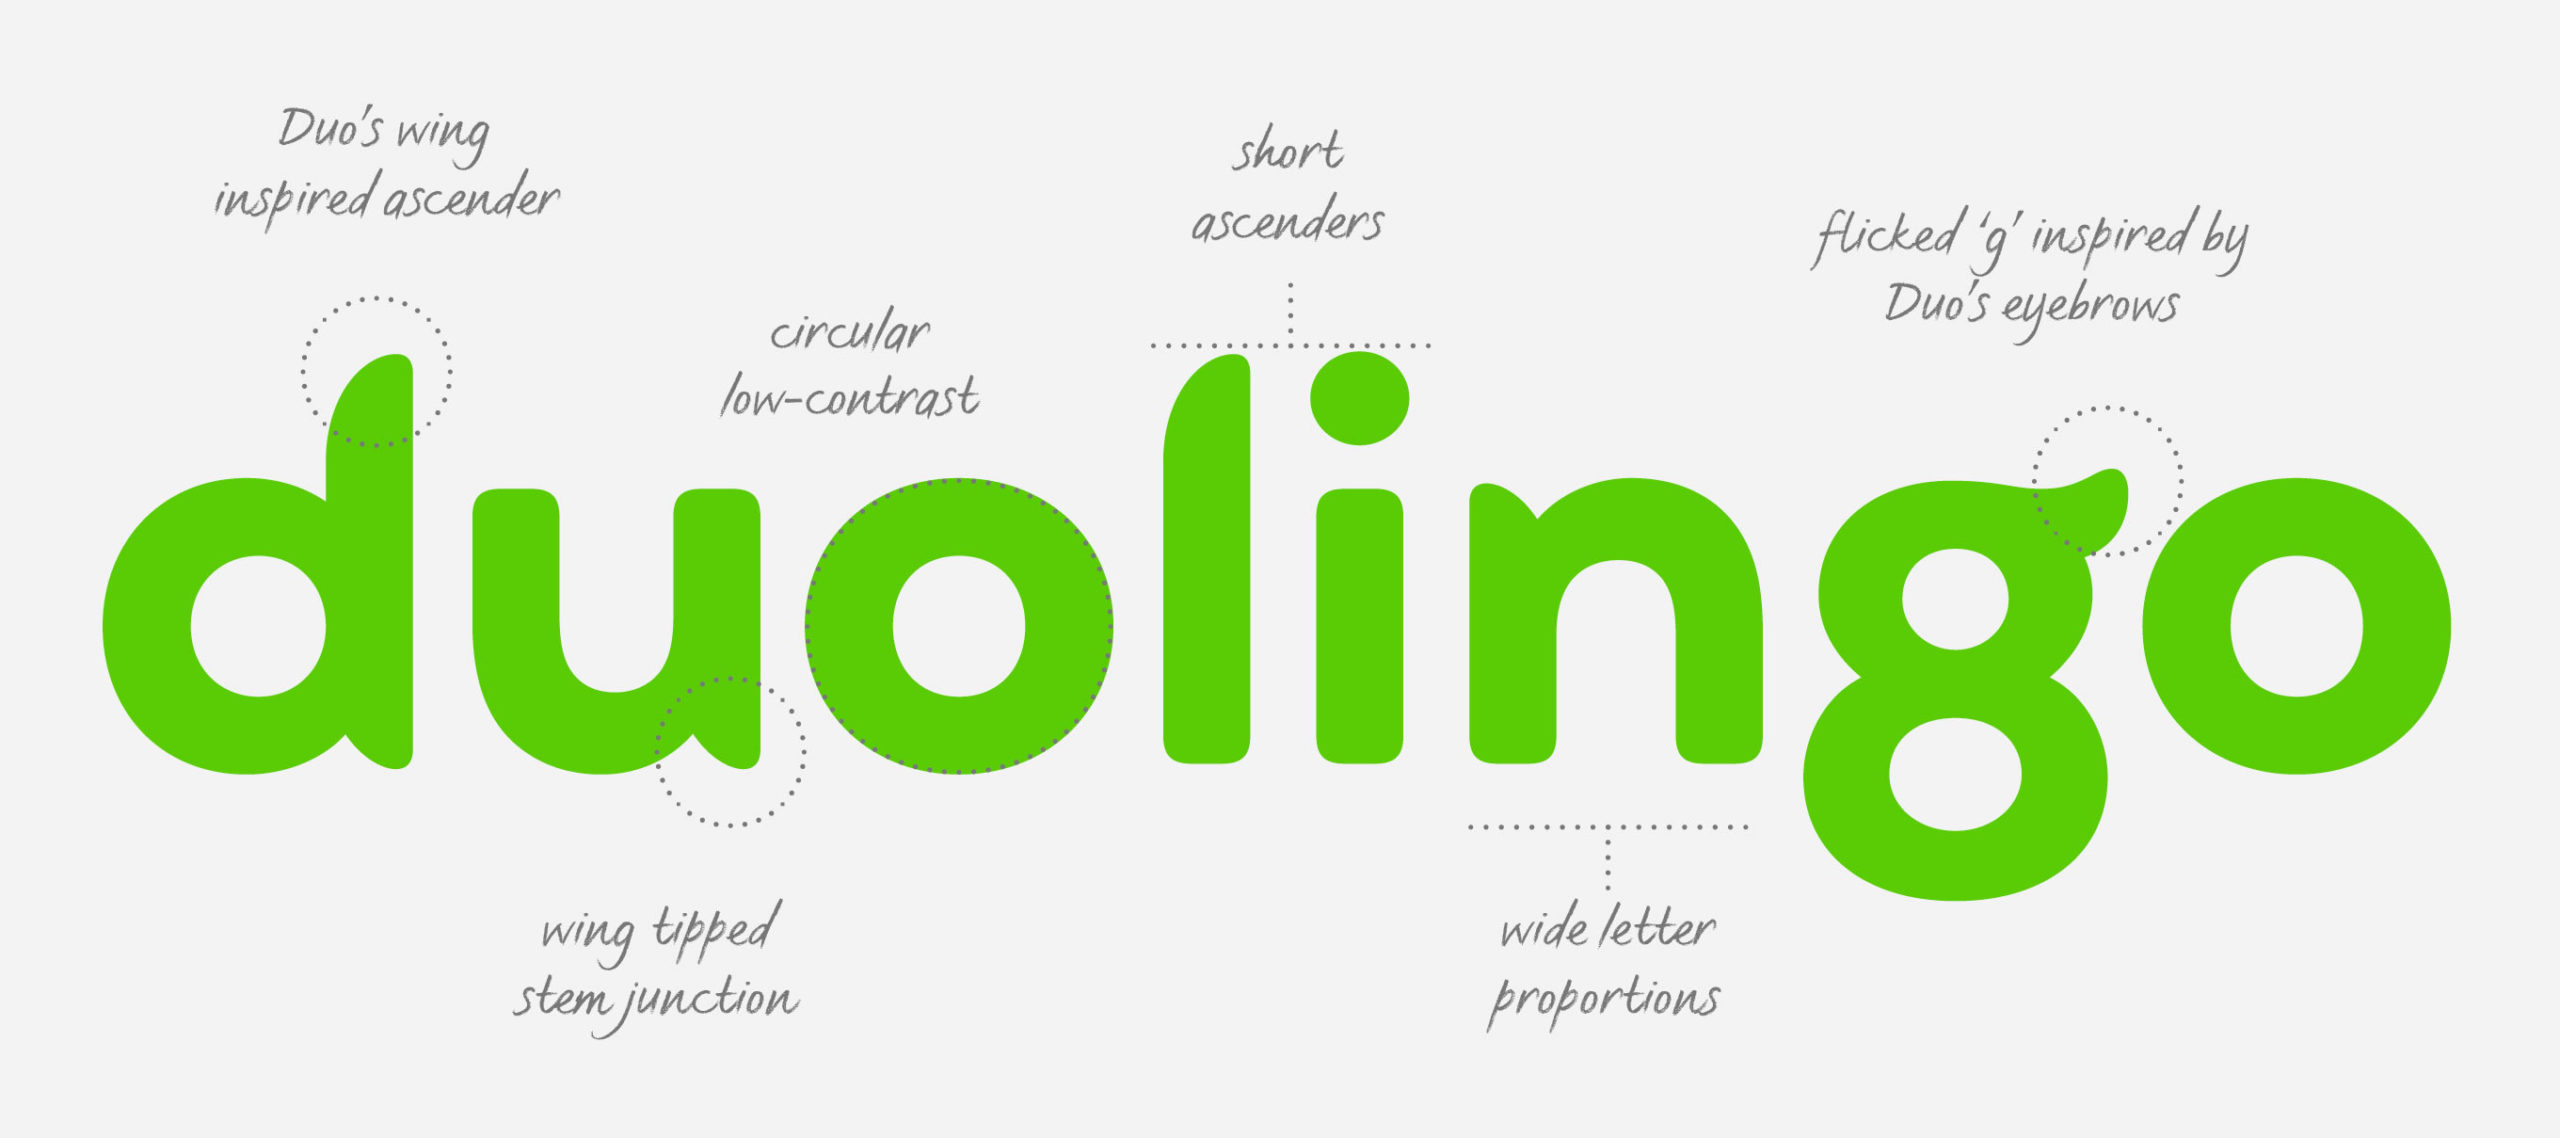 Duolingo_typography5-by-Johnson-Banks